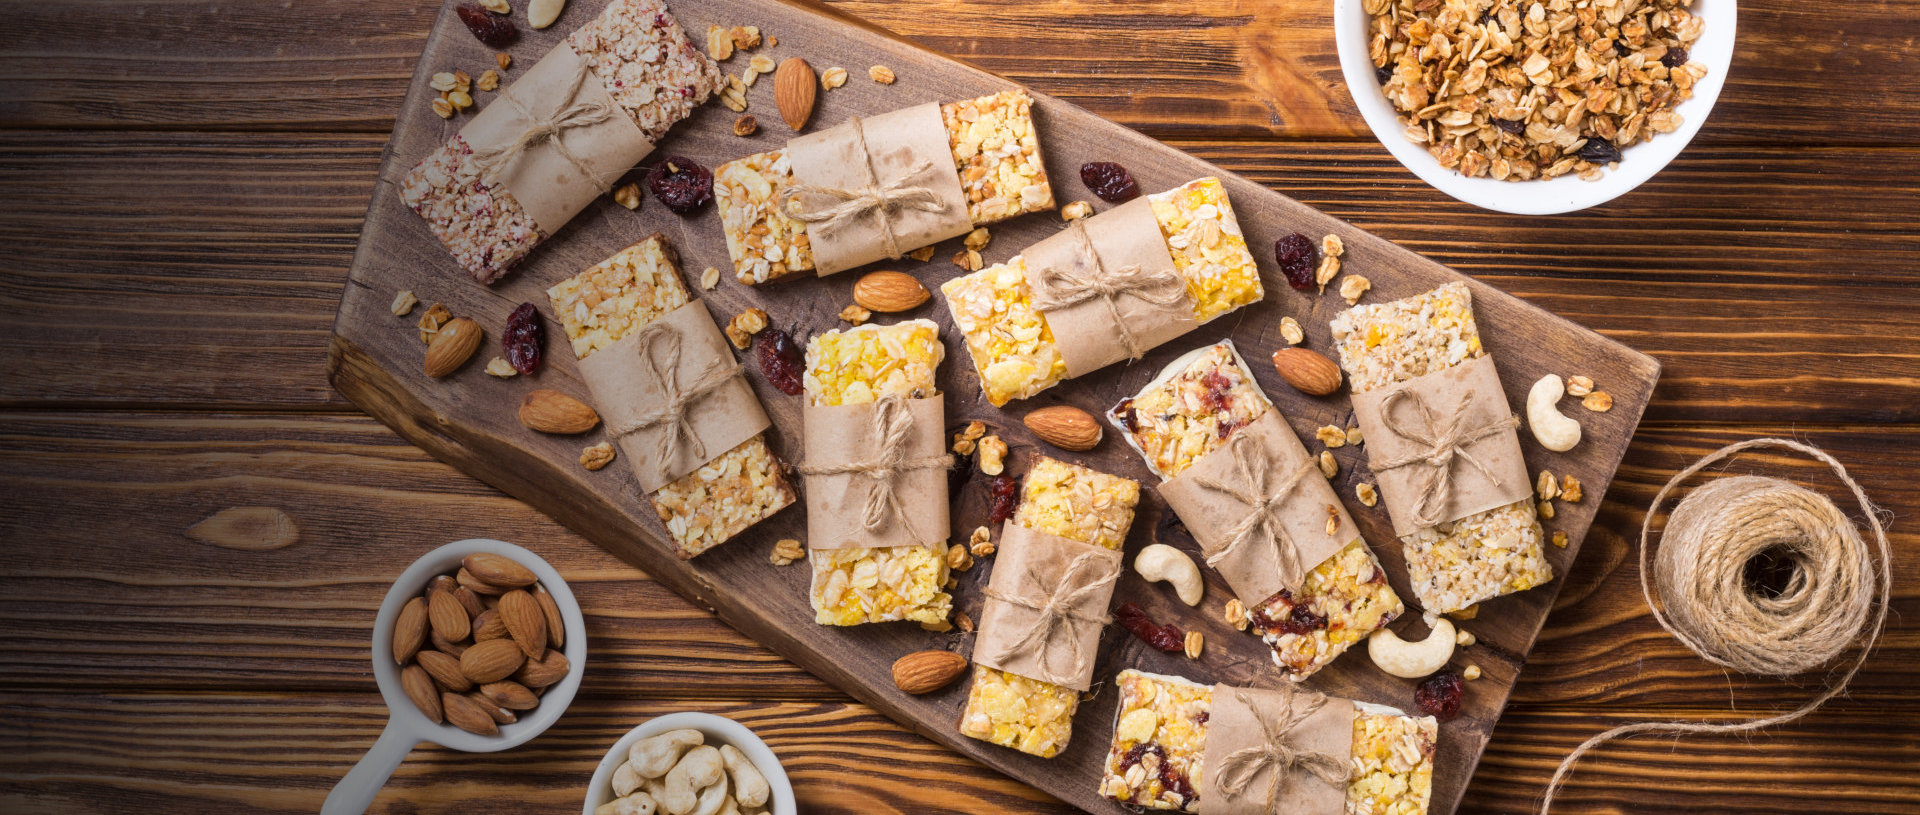 different types of making peanut snacks